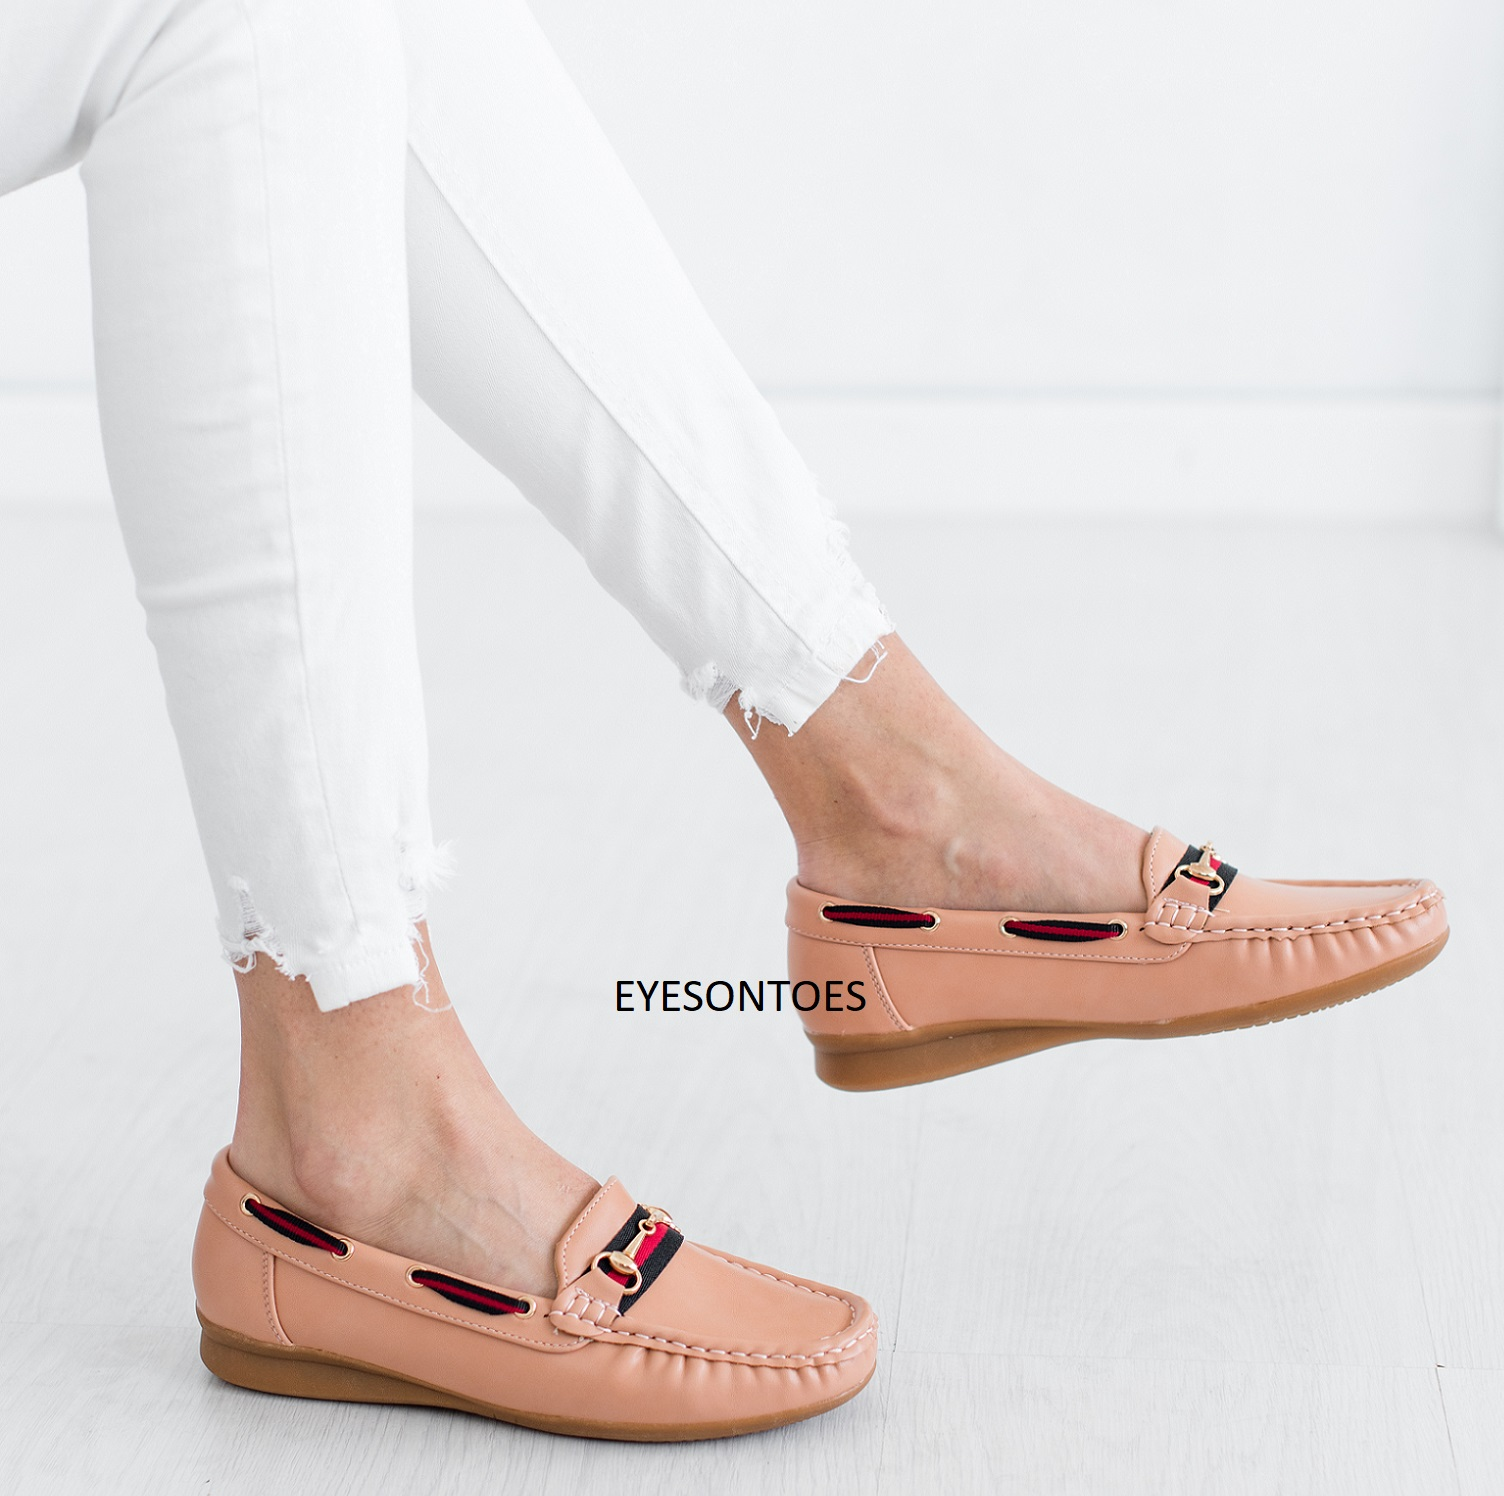 WOMENS LADIES LOAFERS FLATS CASUAL OFFICE WORK PUMPS SHOES SIZES 3-8 ROUND TOES